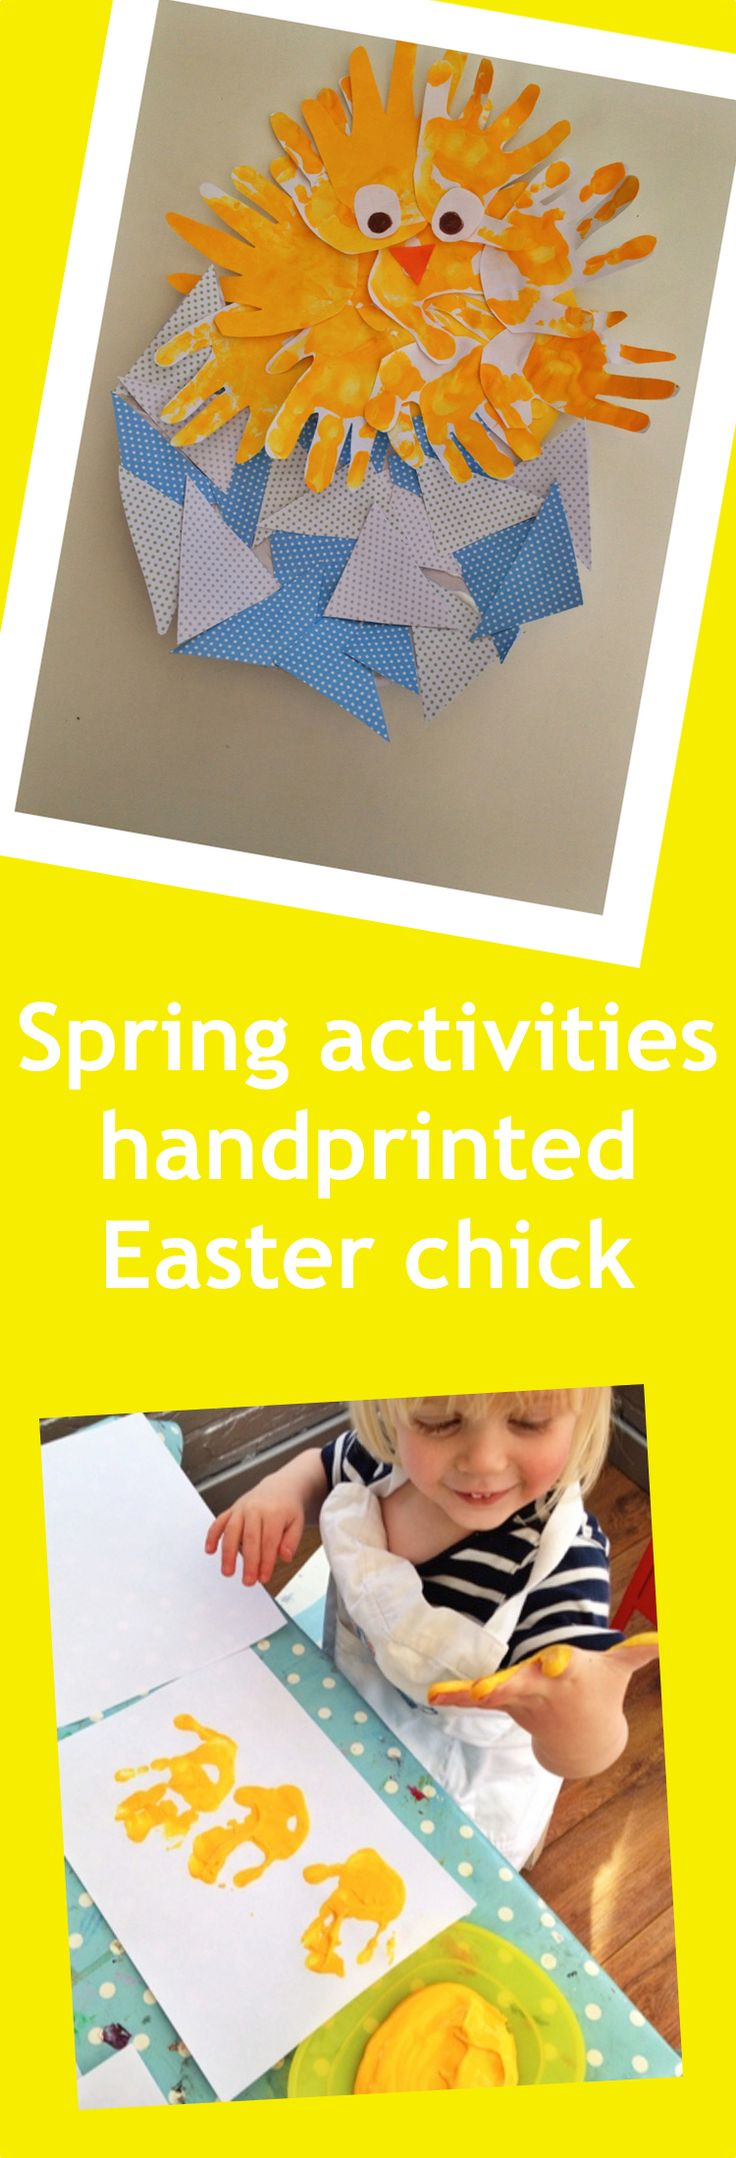 How to make an Easter chick - lovely spring activity messy, fun and so cute | Easter crafts for kids | Daisies & Pie